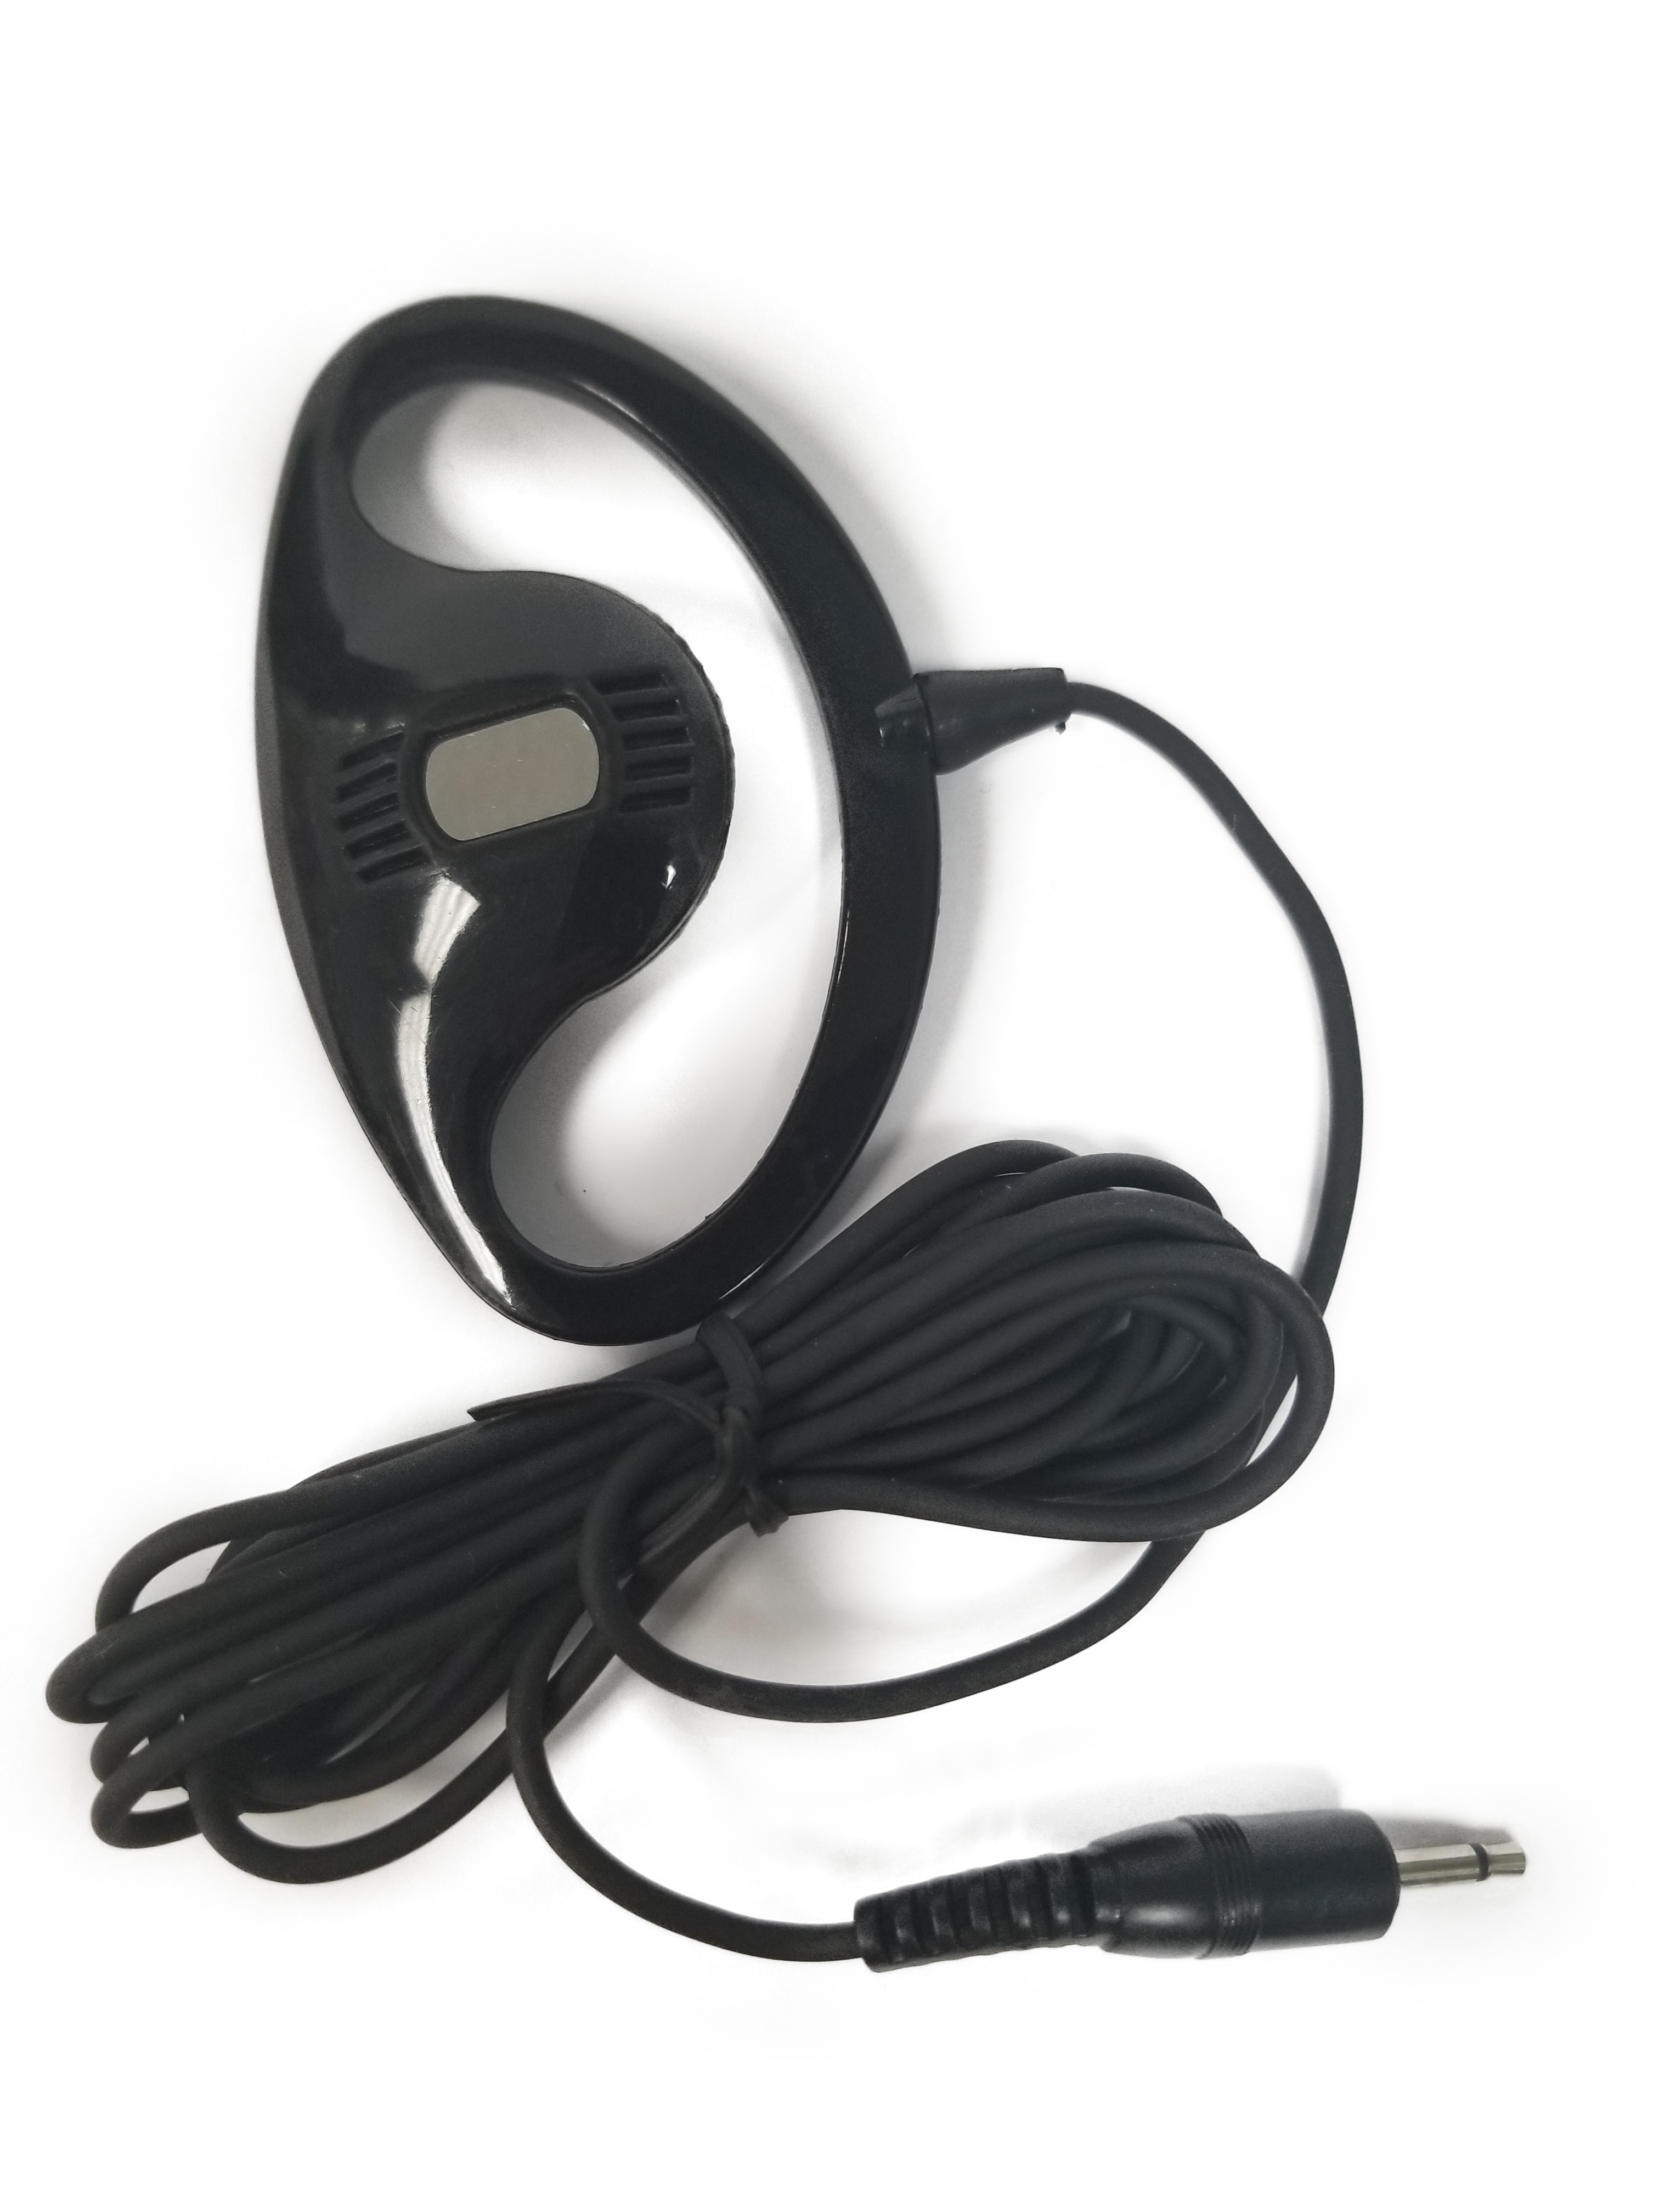 DM6 - Twinpoint Ear Phone With 2.5mm Plug